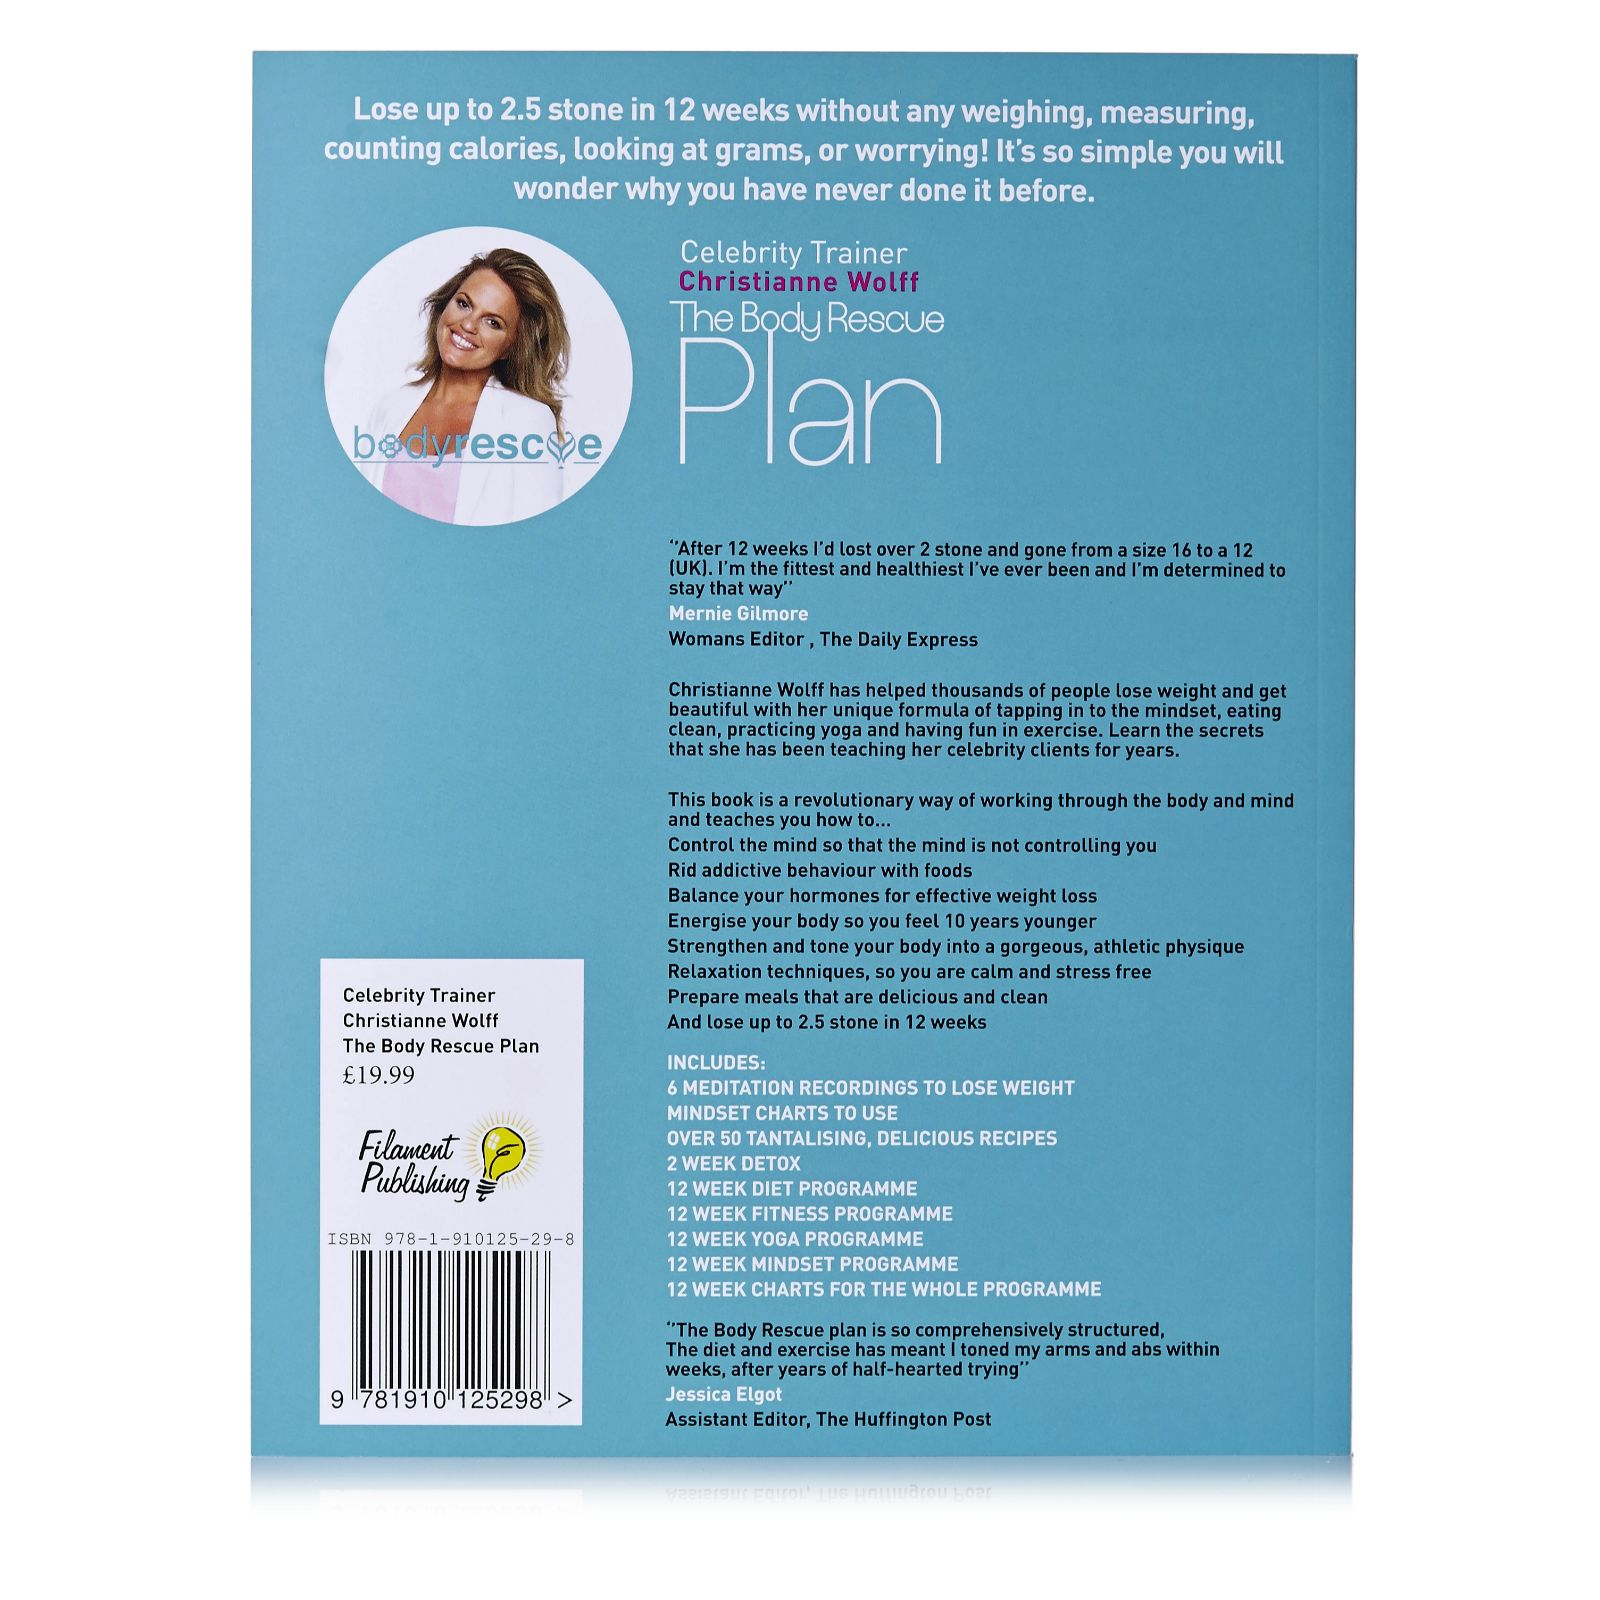 The Body Rescue Plan Paperback by Christianne Wolff - QVC UK